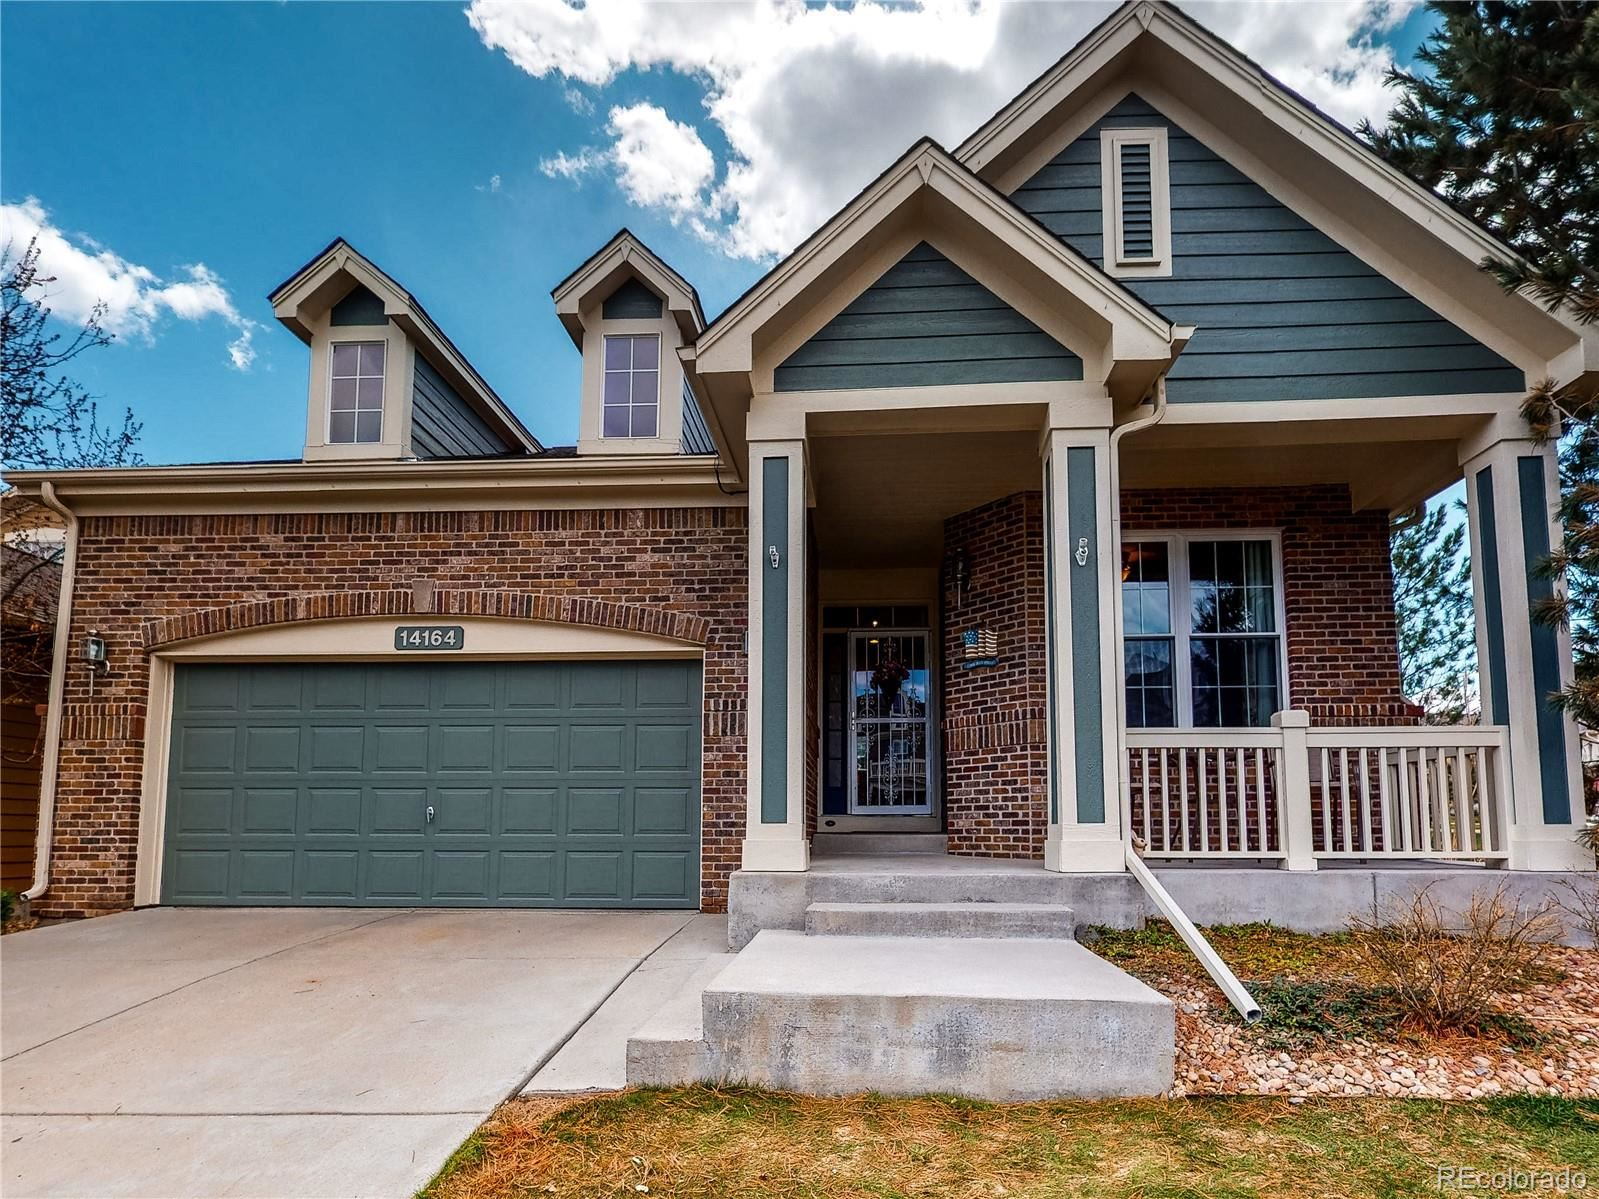 14164 W 84th Place, Arvada, CO 80005 - #: 3033299